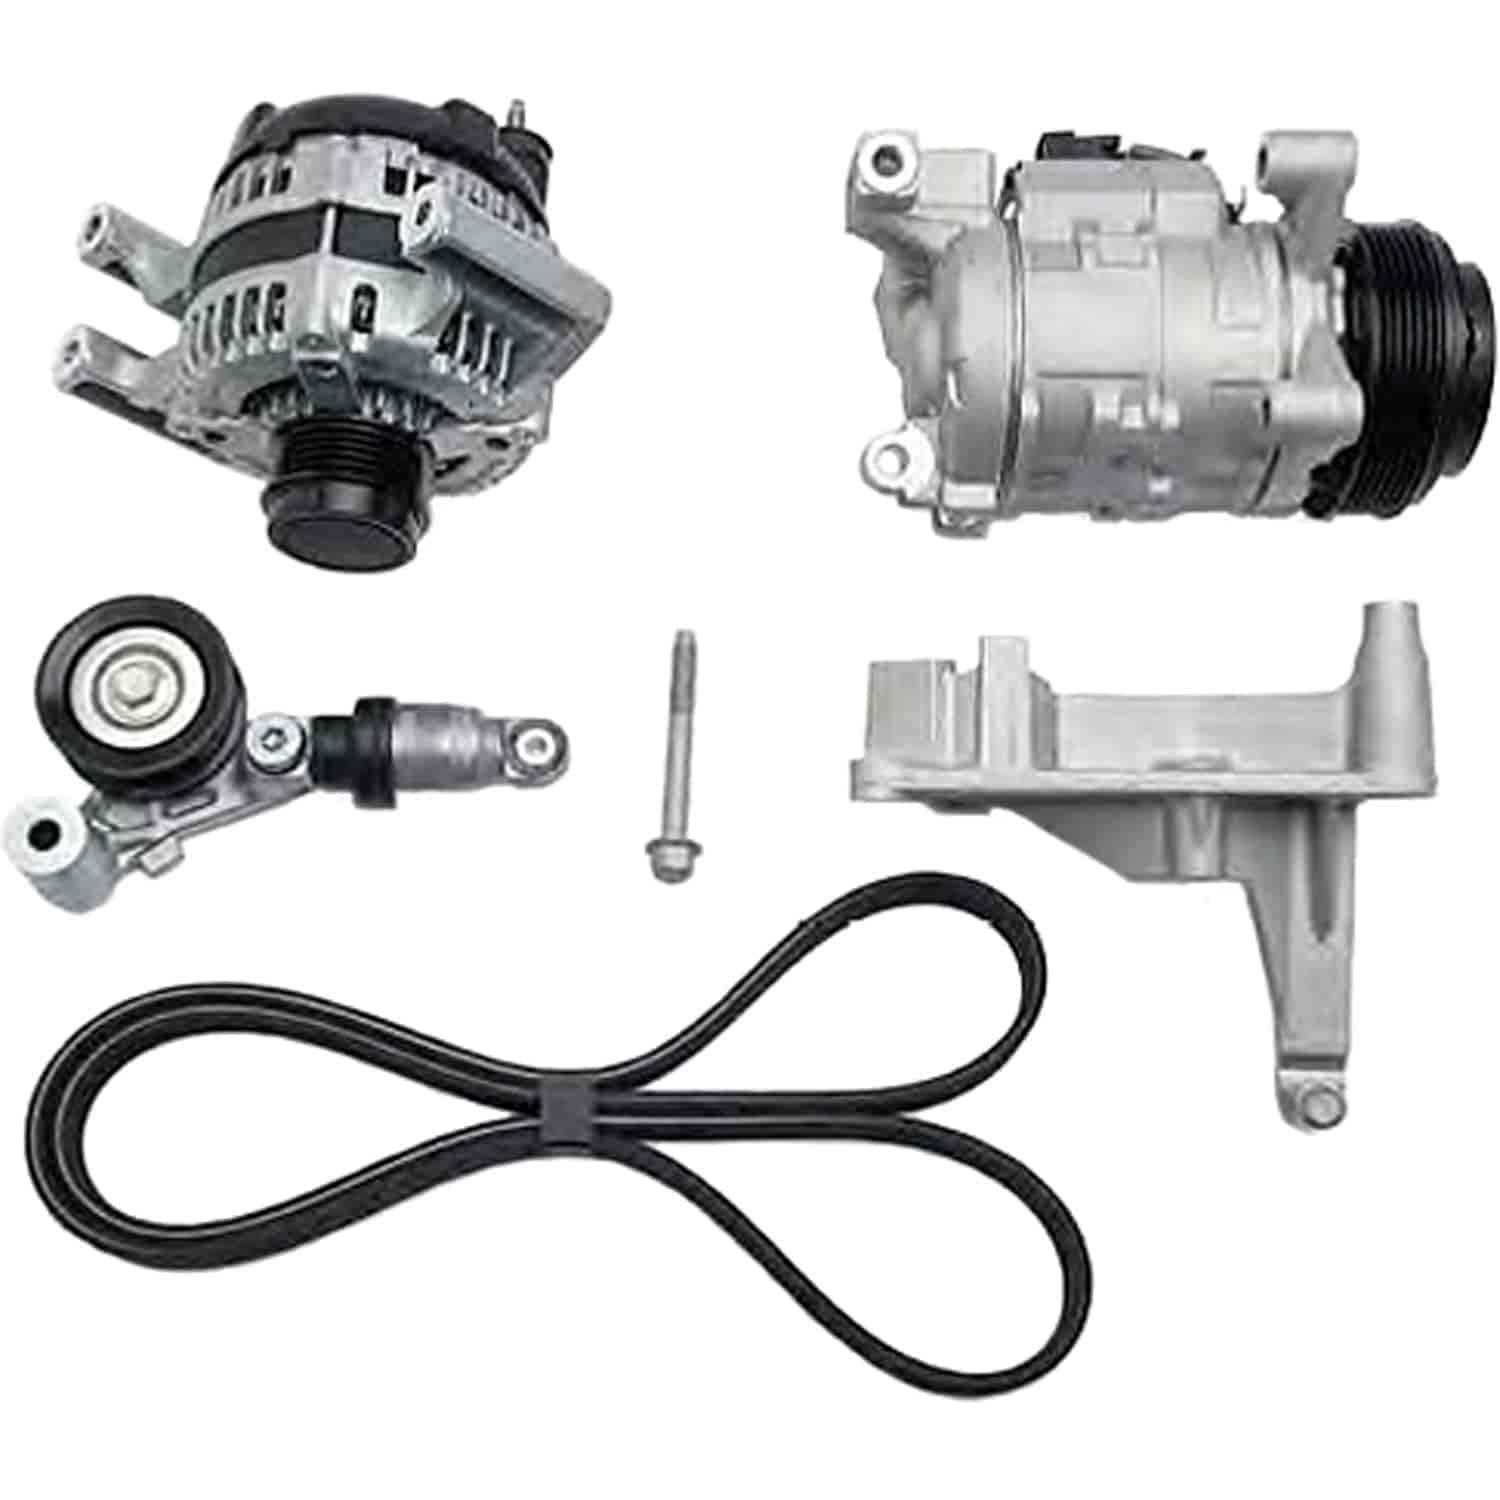 Accessories For Your Chevy Lt1: Chevy 19329990: LT1 Alternator & A/C Compressor Mounting